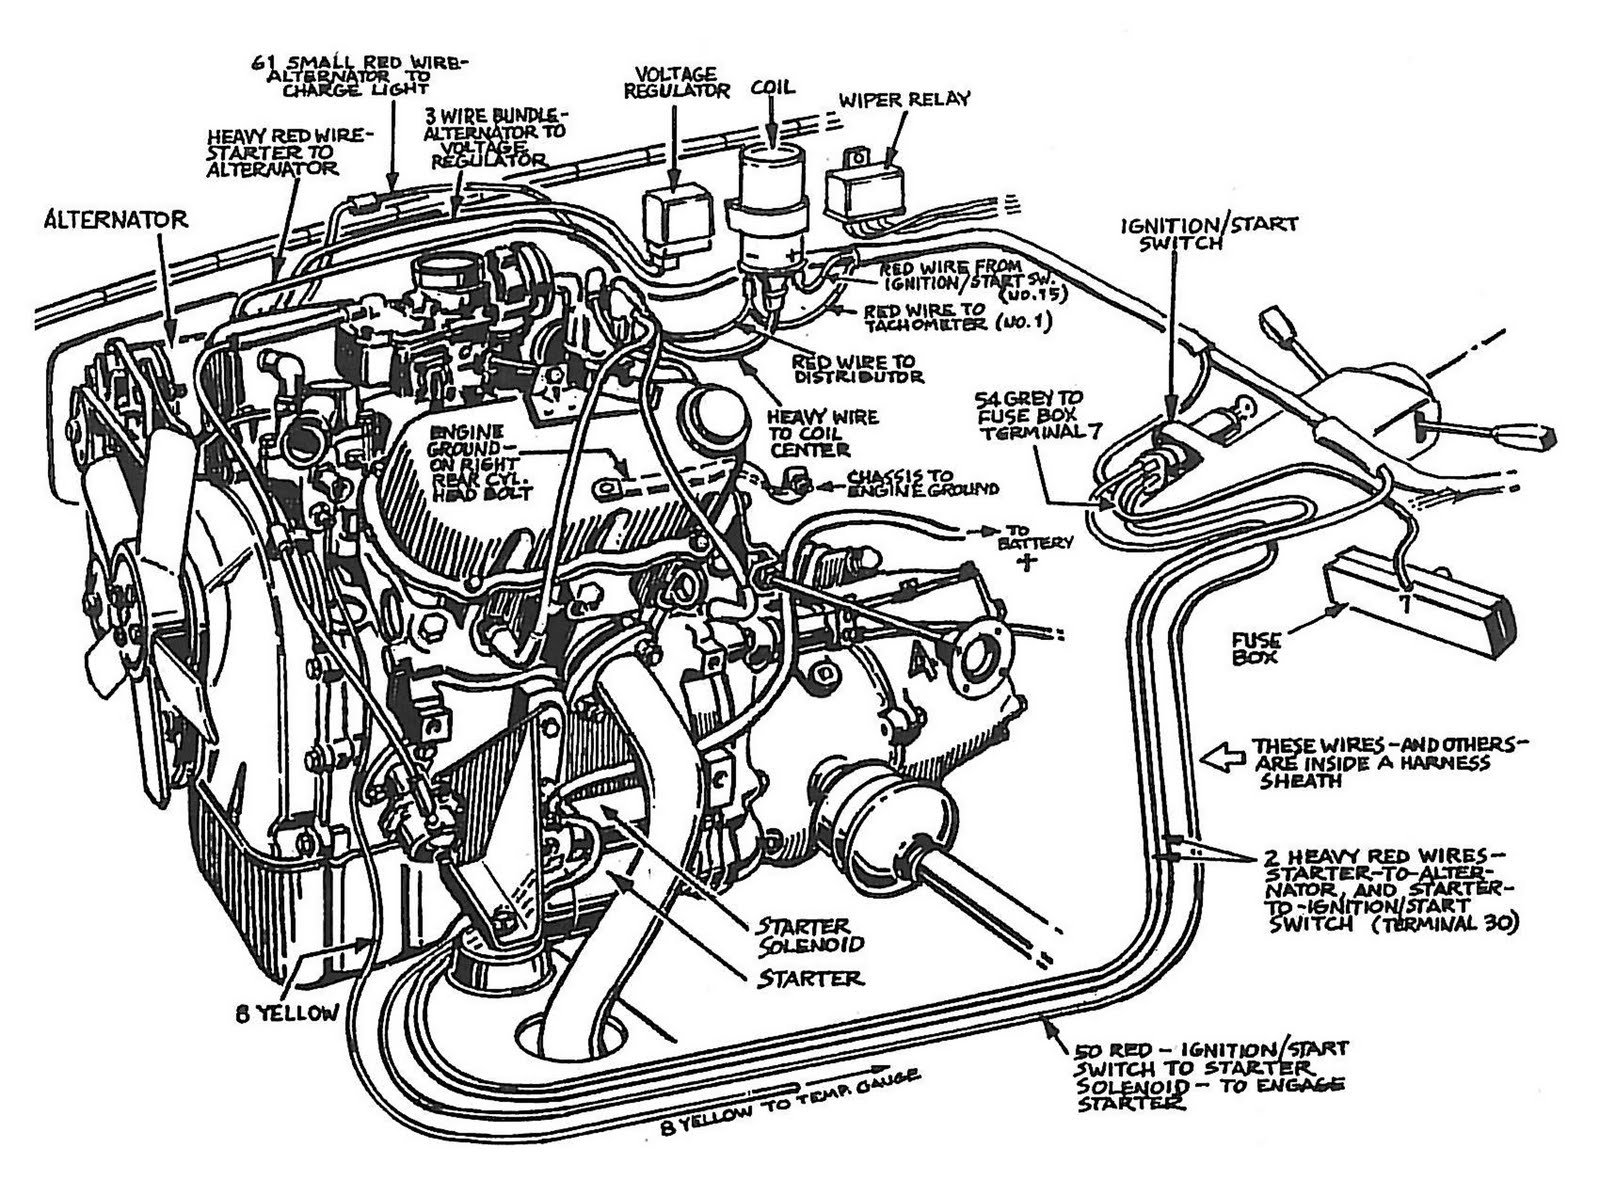 Saab 9 3 Repair Manual Saab 9 3 Engine Saab 9 3 Engine Diagram Saab 9